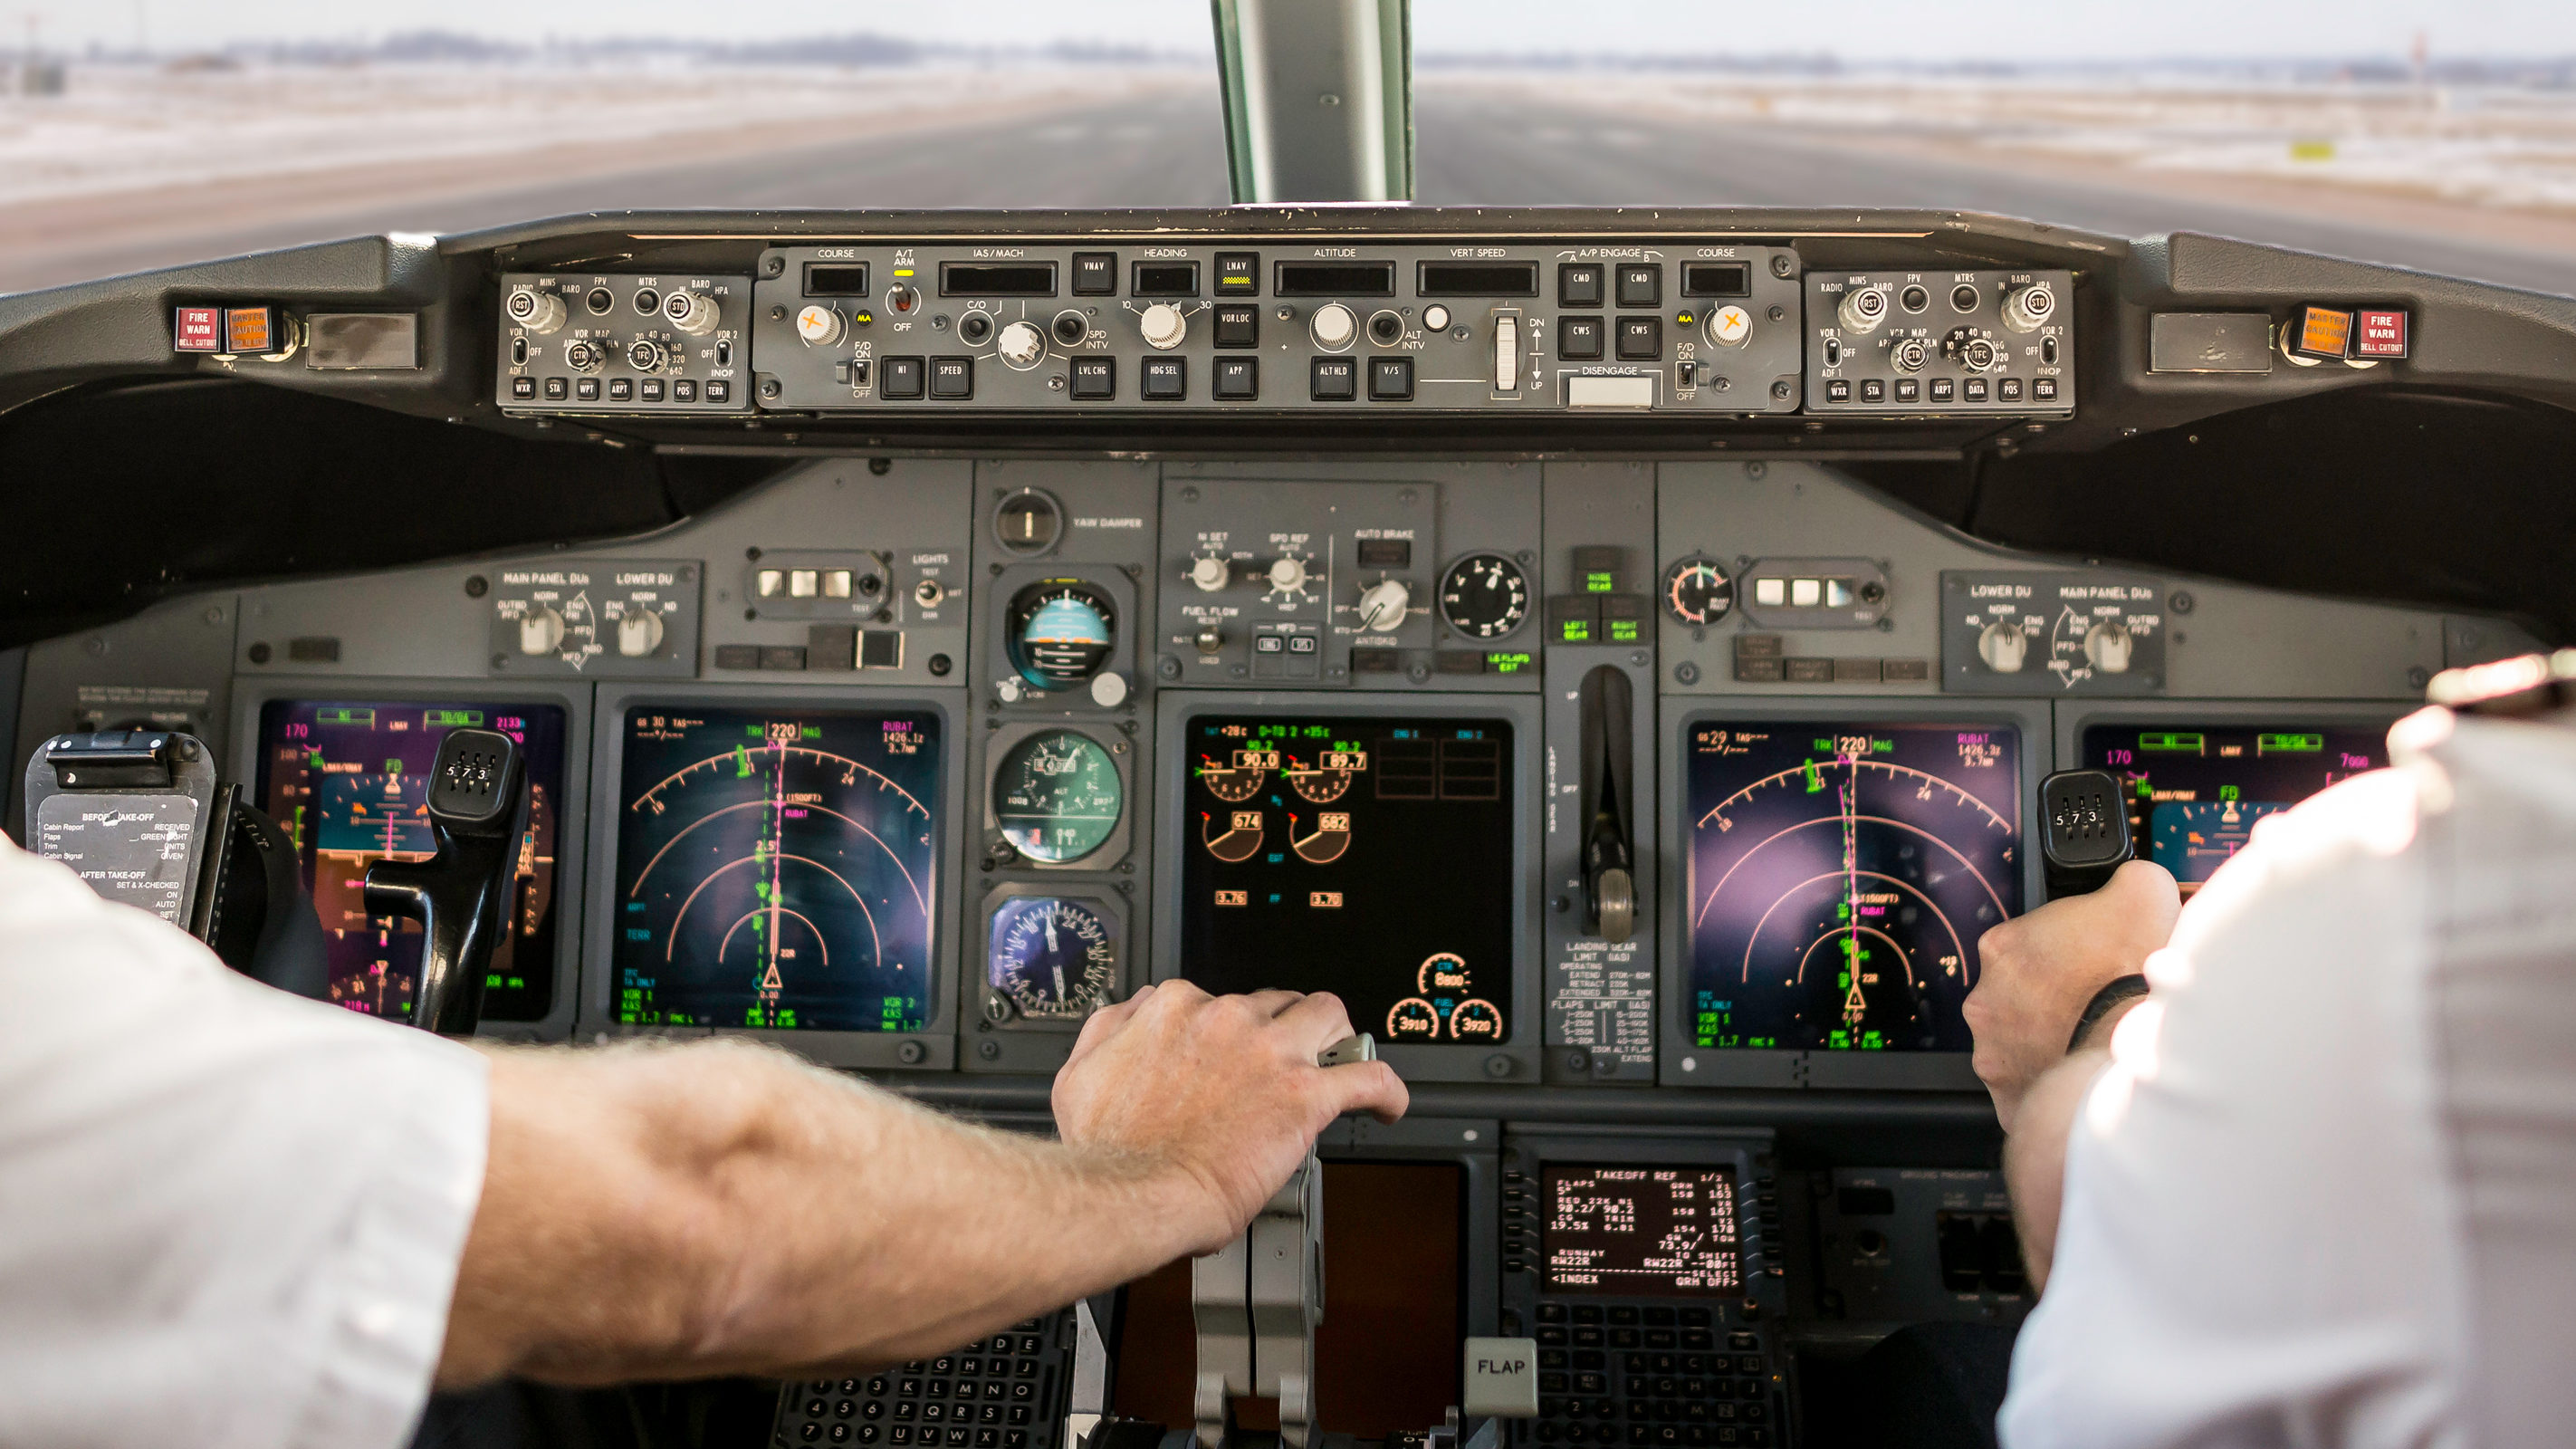 Captain is pulling an aircraft throttle, while first officer is piloting and taking off. Pilots are sitting in Boeing 737-800. Getty Images